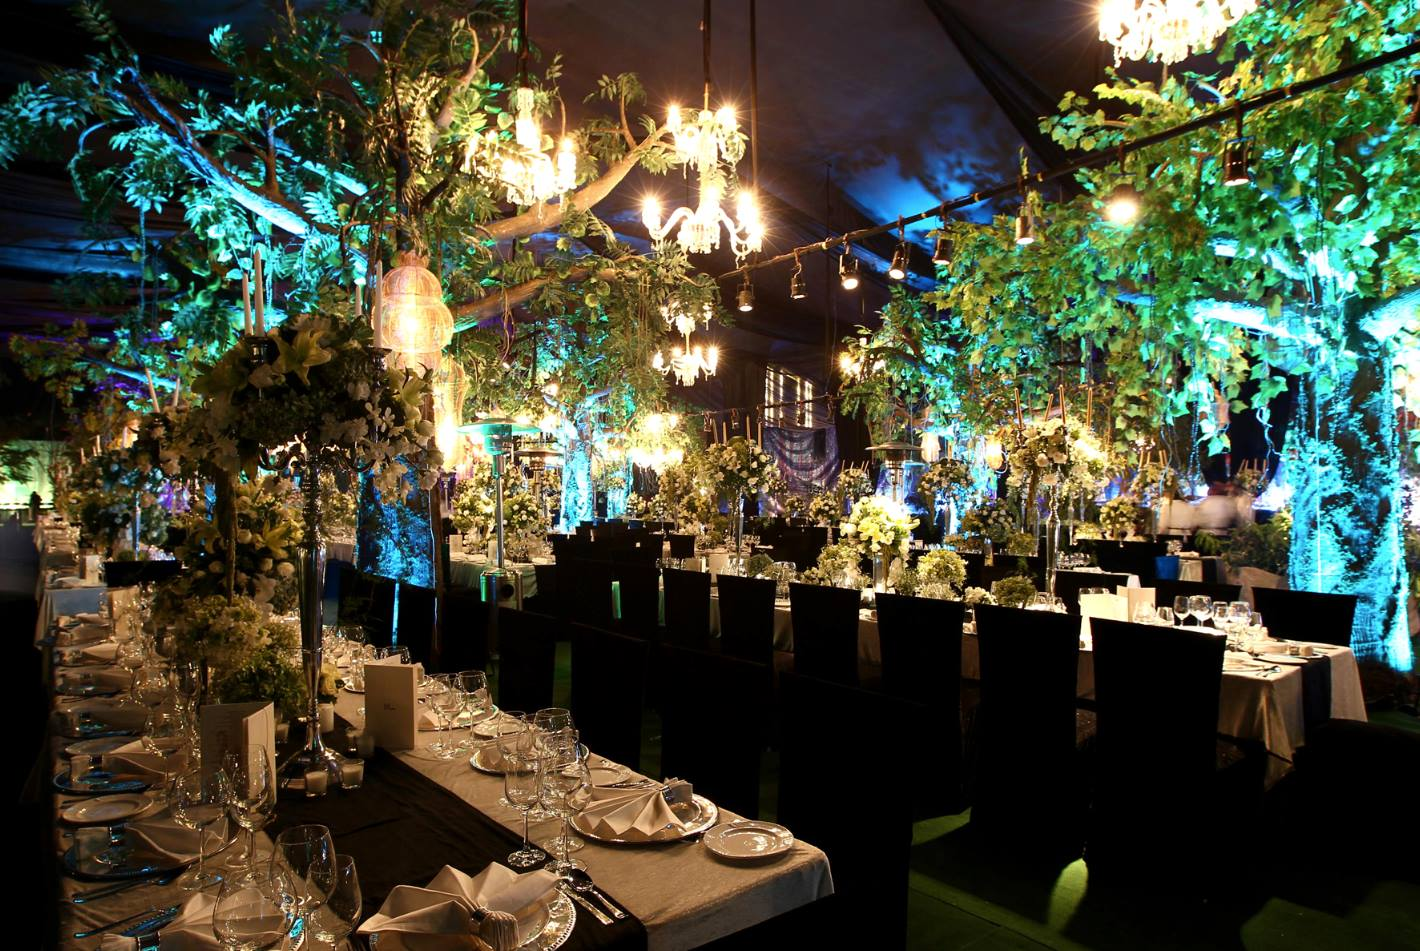 View Wedding Decor: Fashion Designers Tie The Knot With Wedding Décor